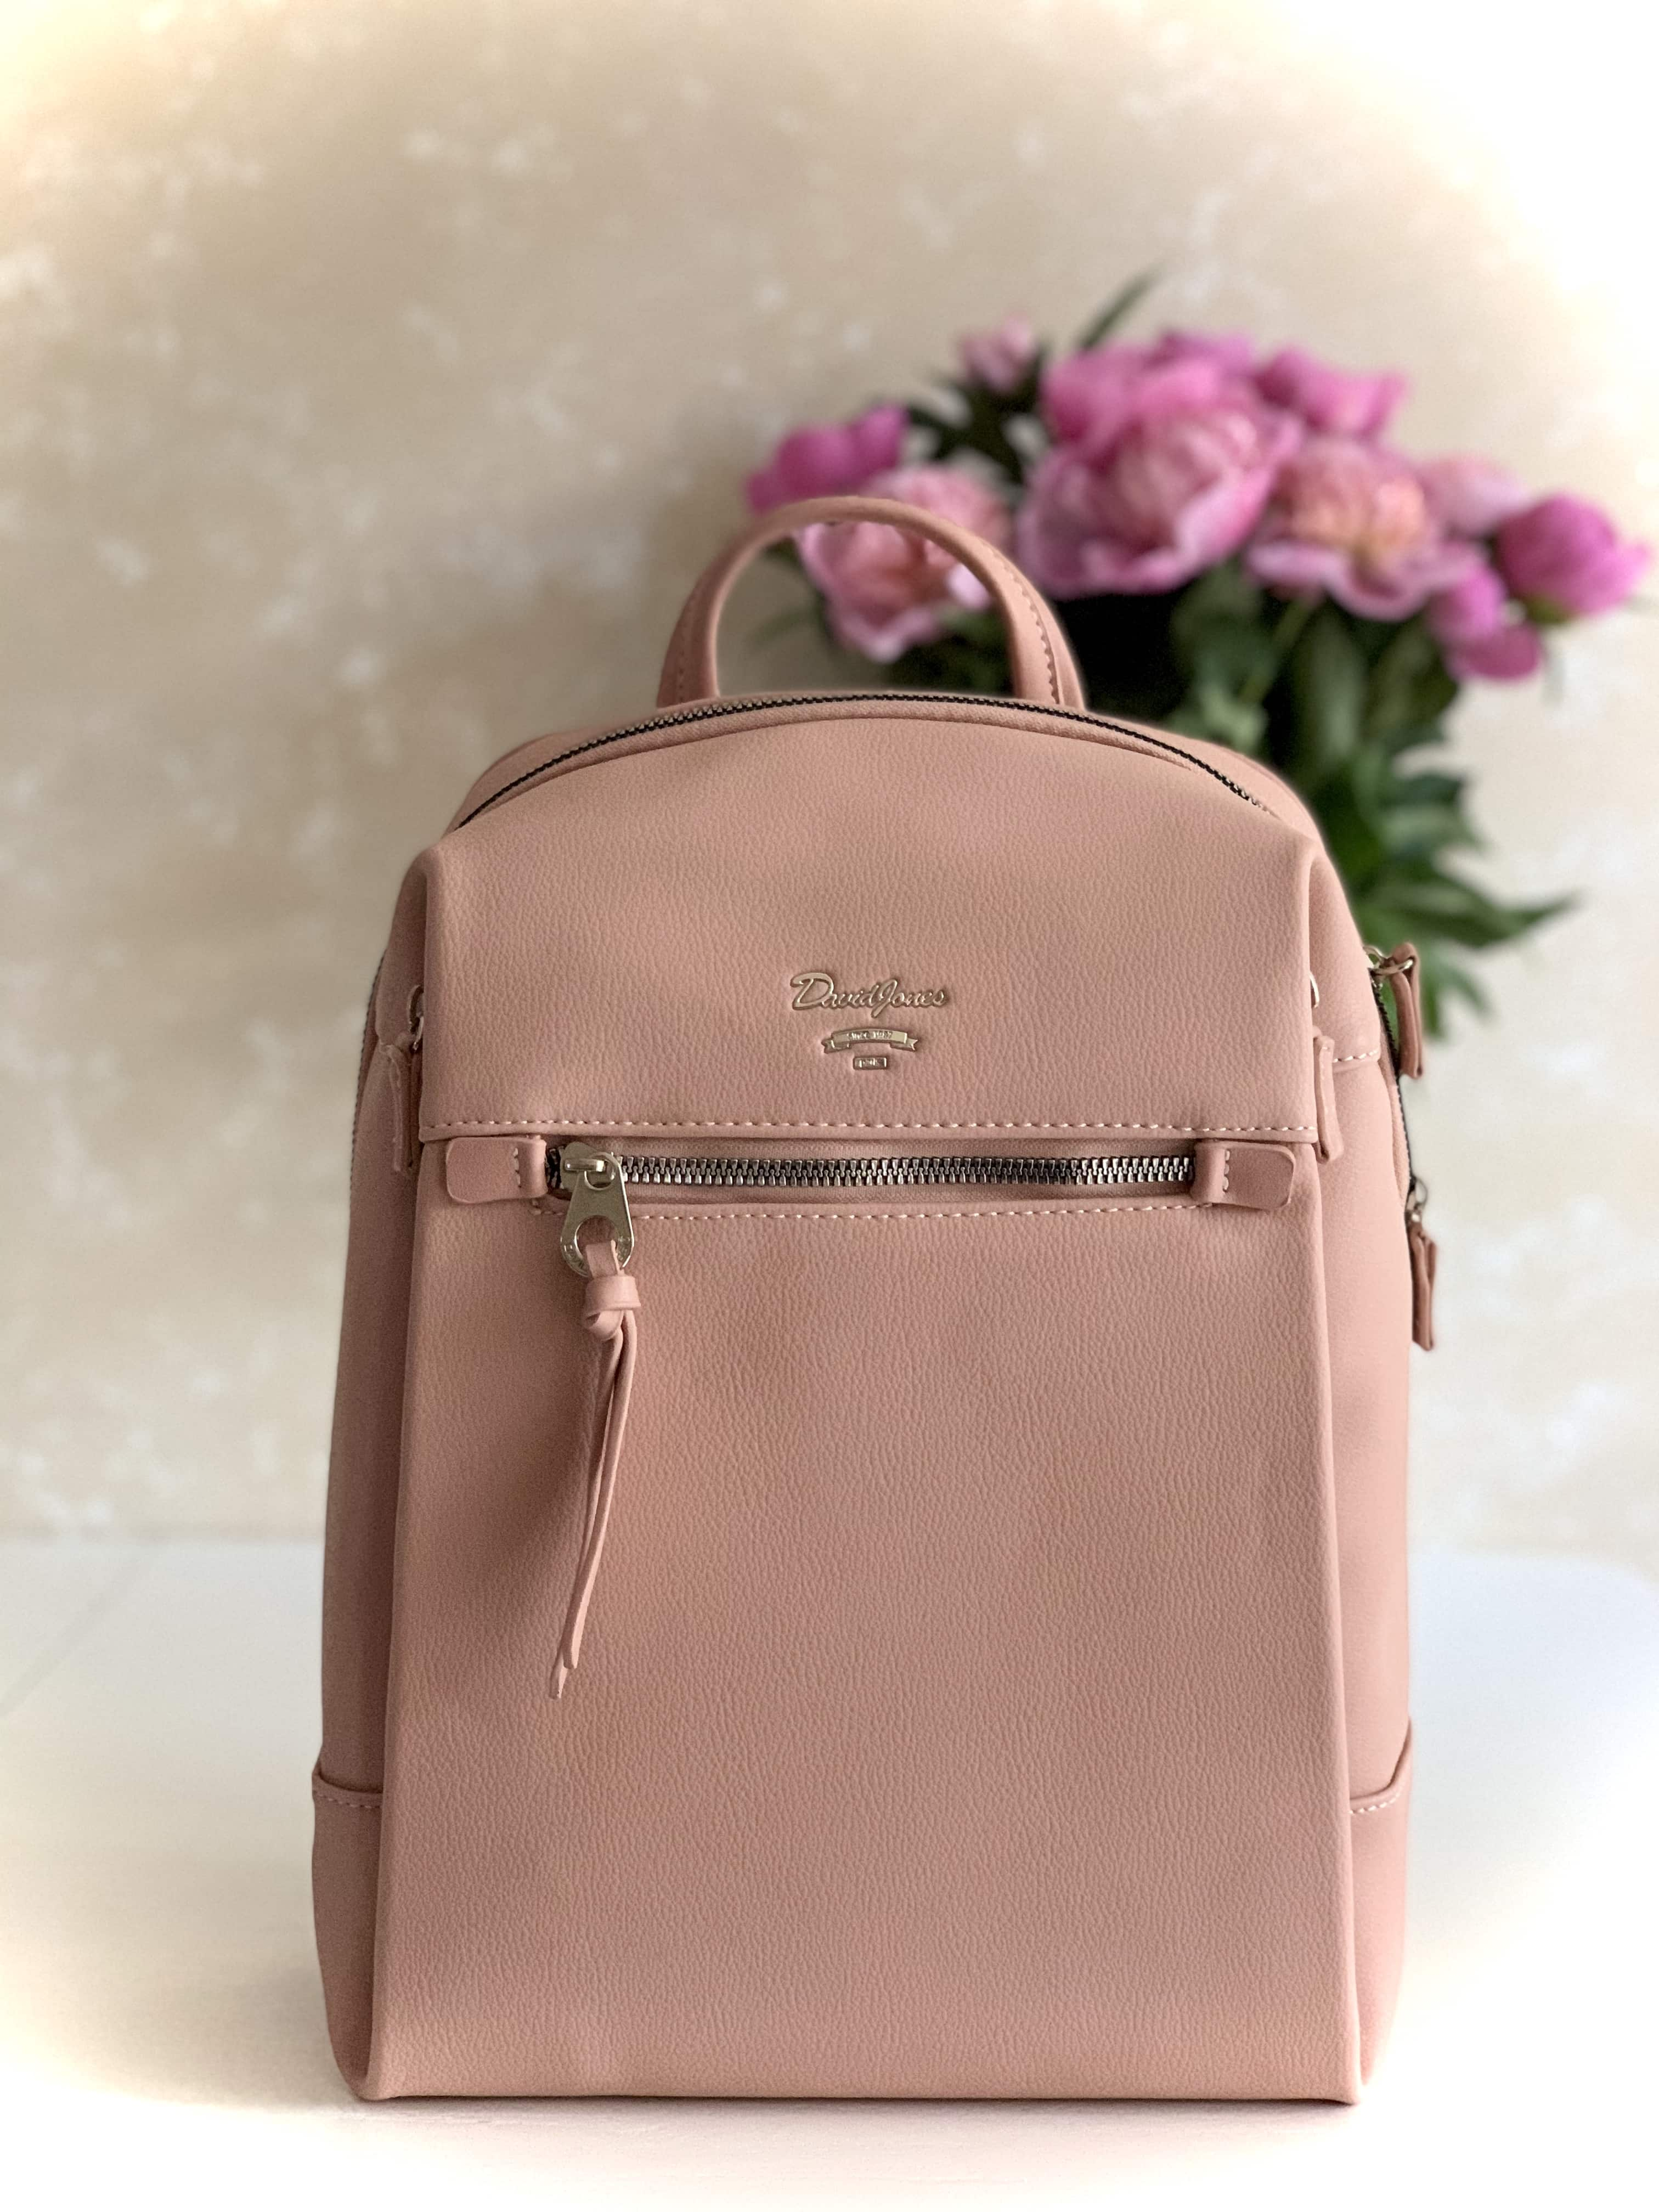 GHIOZDAN PT FEMEI DAVID JONES CM5343 PINK